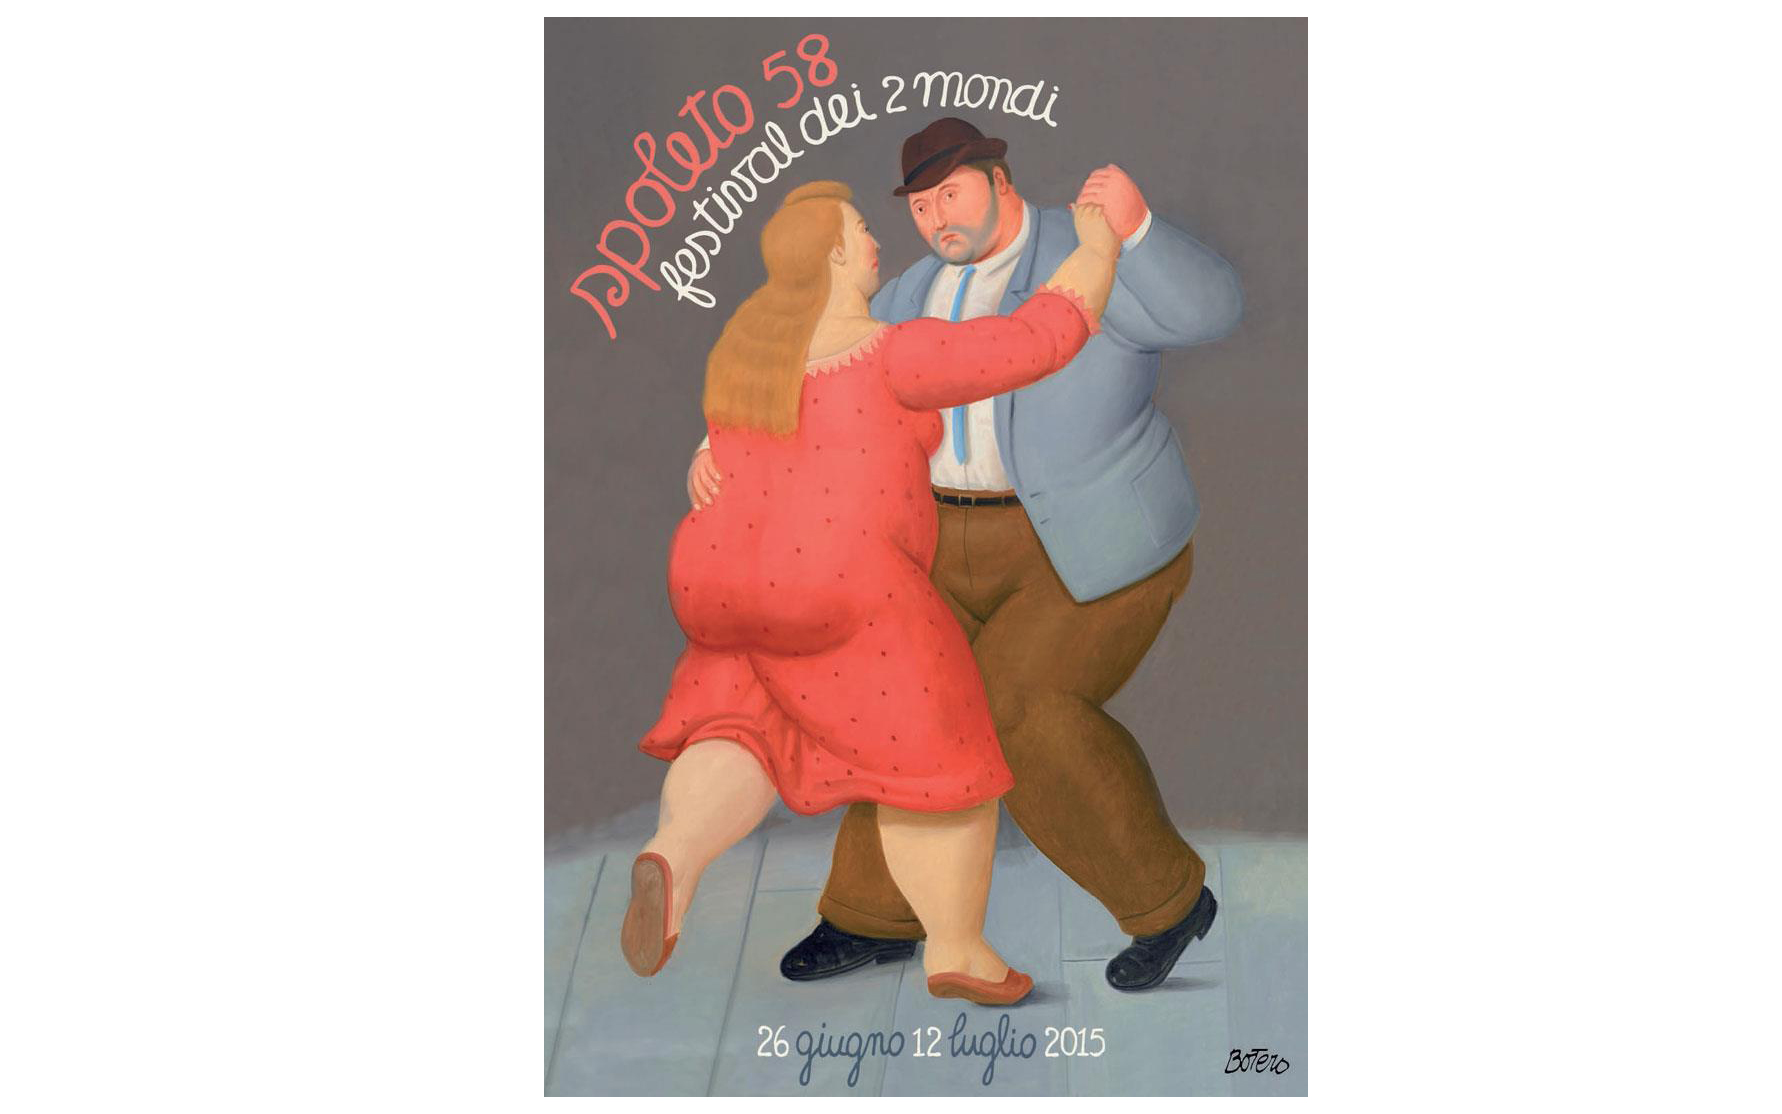 Fernando Botero Designs Poster for Italy's Two Worlds Festival